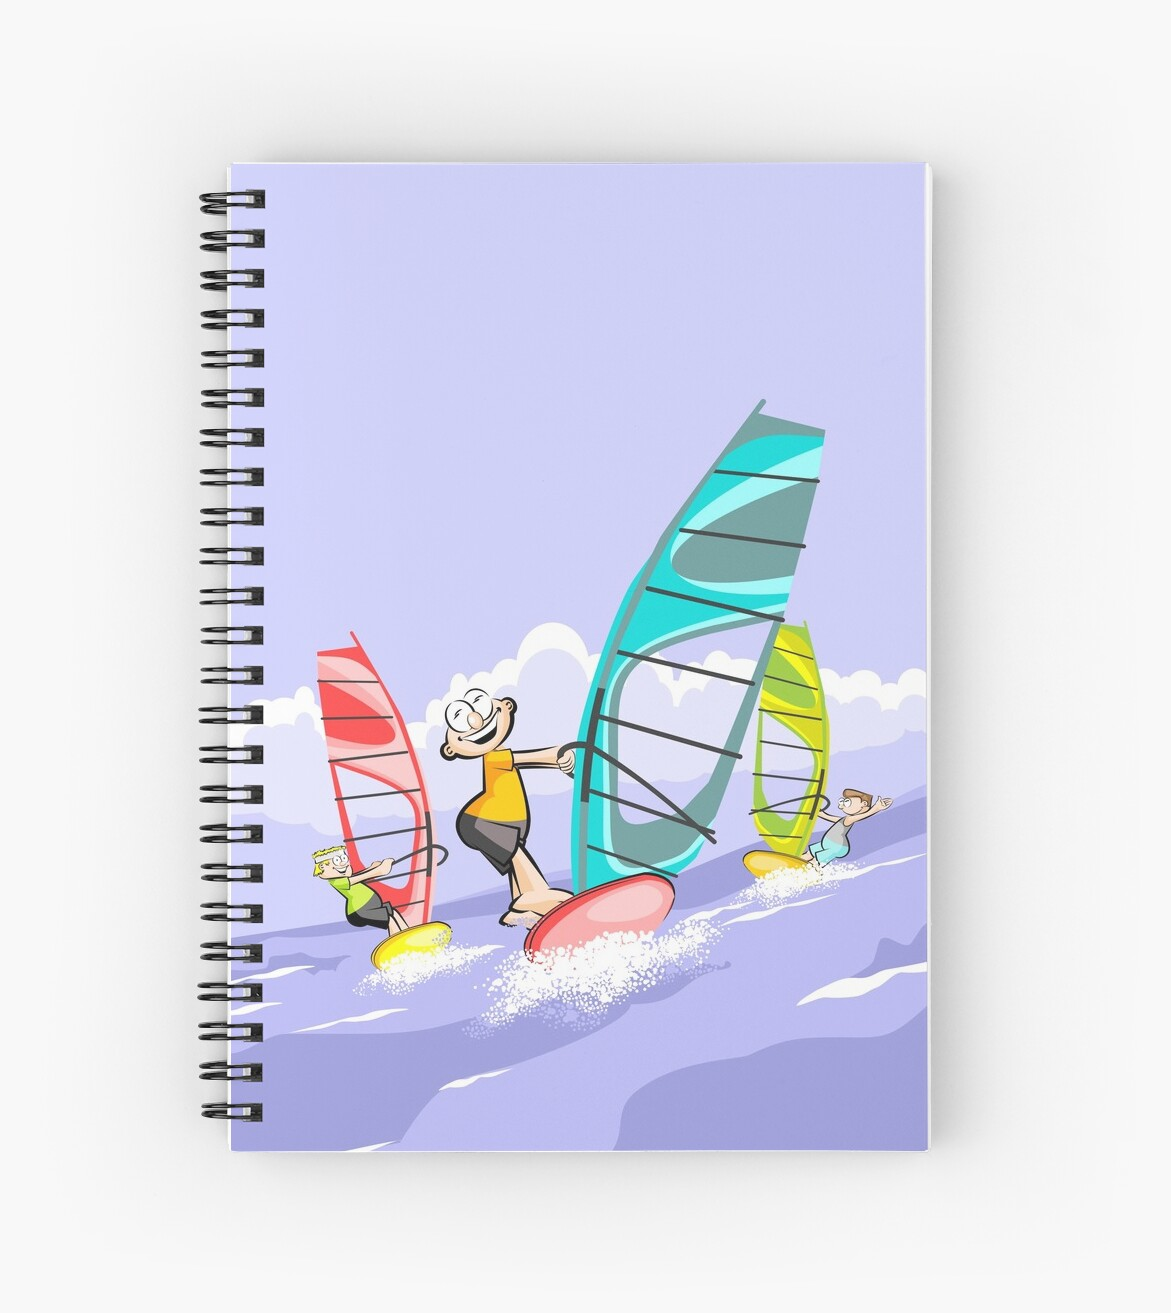 windsurfing three boys having fun by MegaSitioDesign